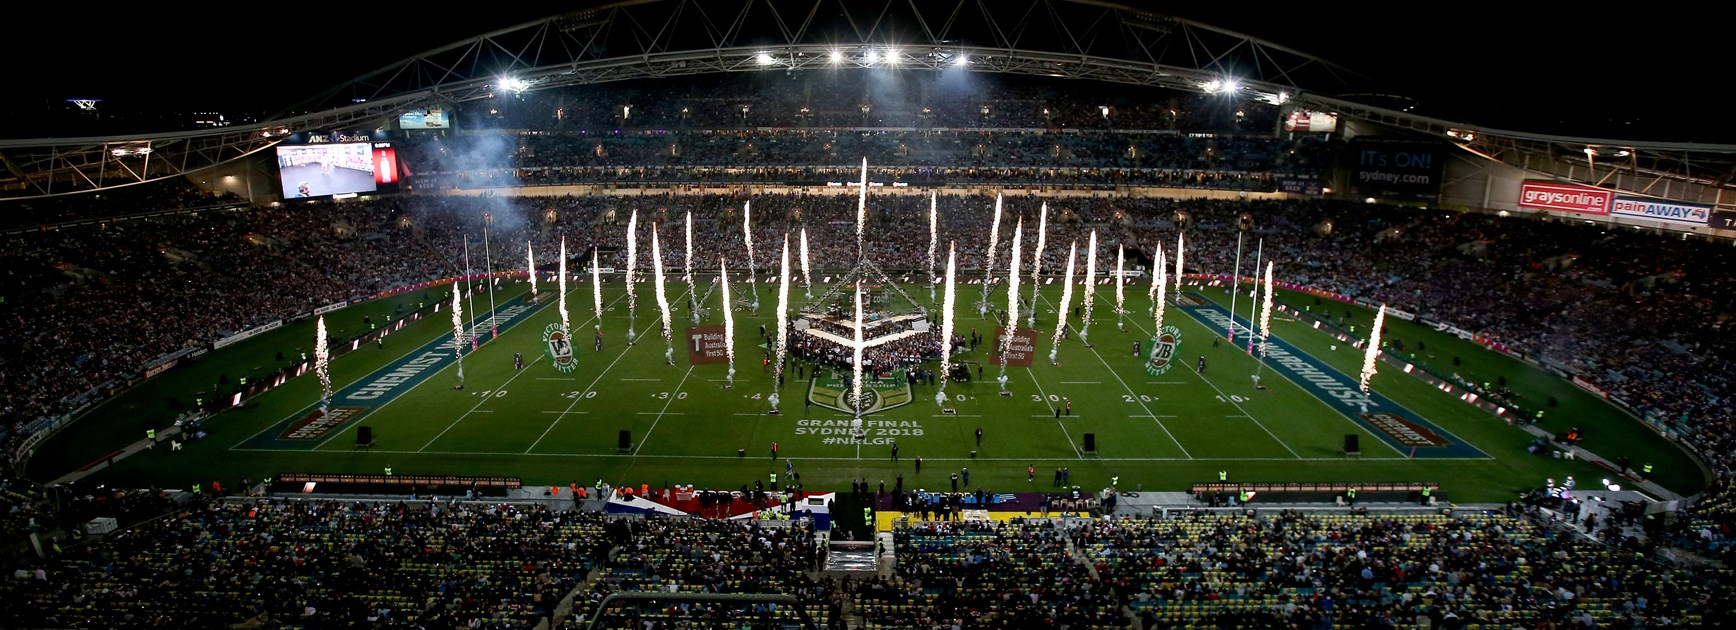 The 2018 grand final at ANZ Stadium.